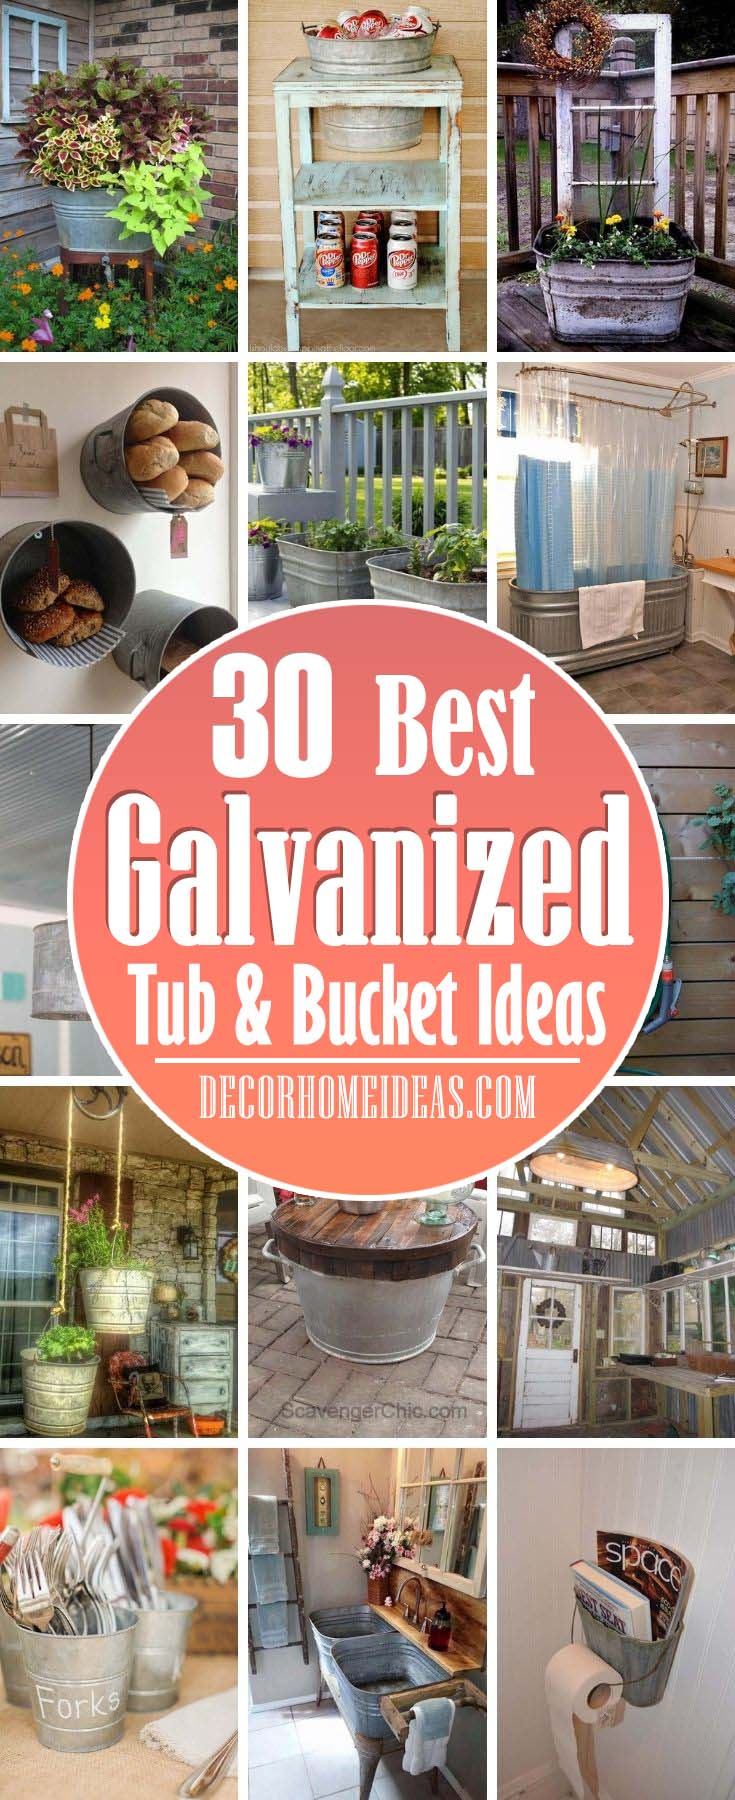 Repurposed Galvanized Tub Bucket Ideas. If repurposing is something you like to do, the following ideas to Use Rustic Galvanized Containers, Tubs and Buckets just might interest you. #decorhomeideas